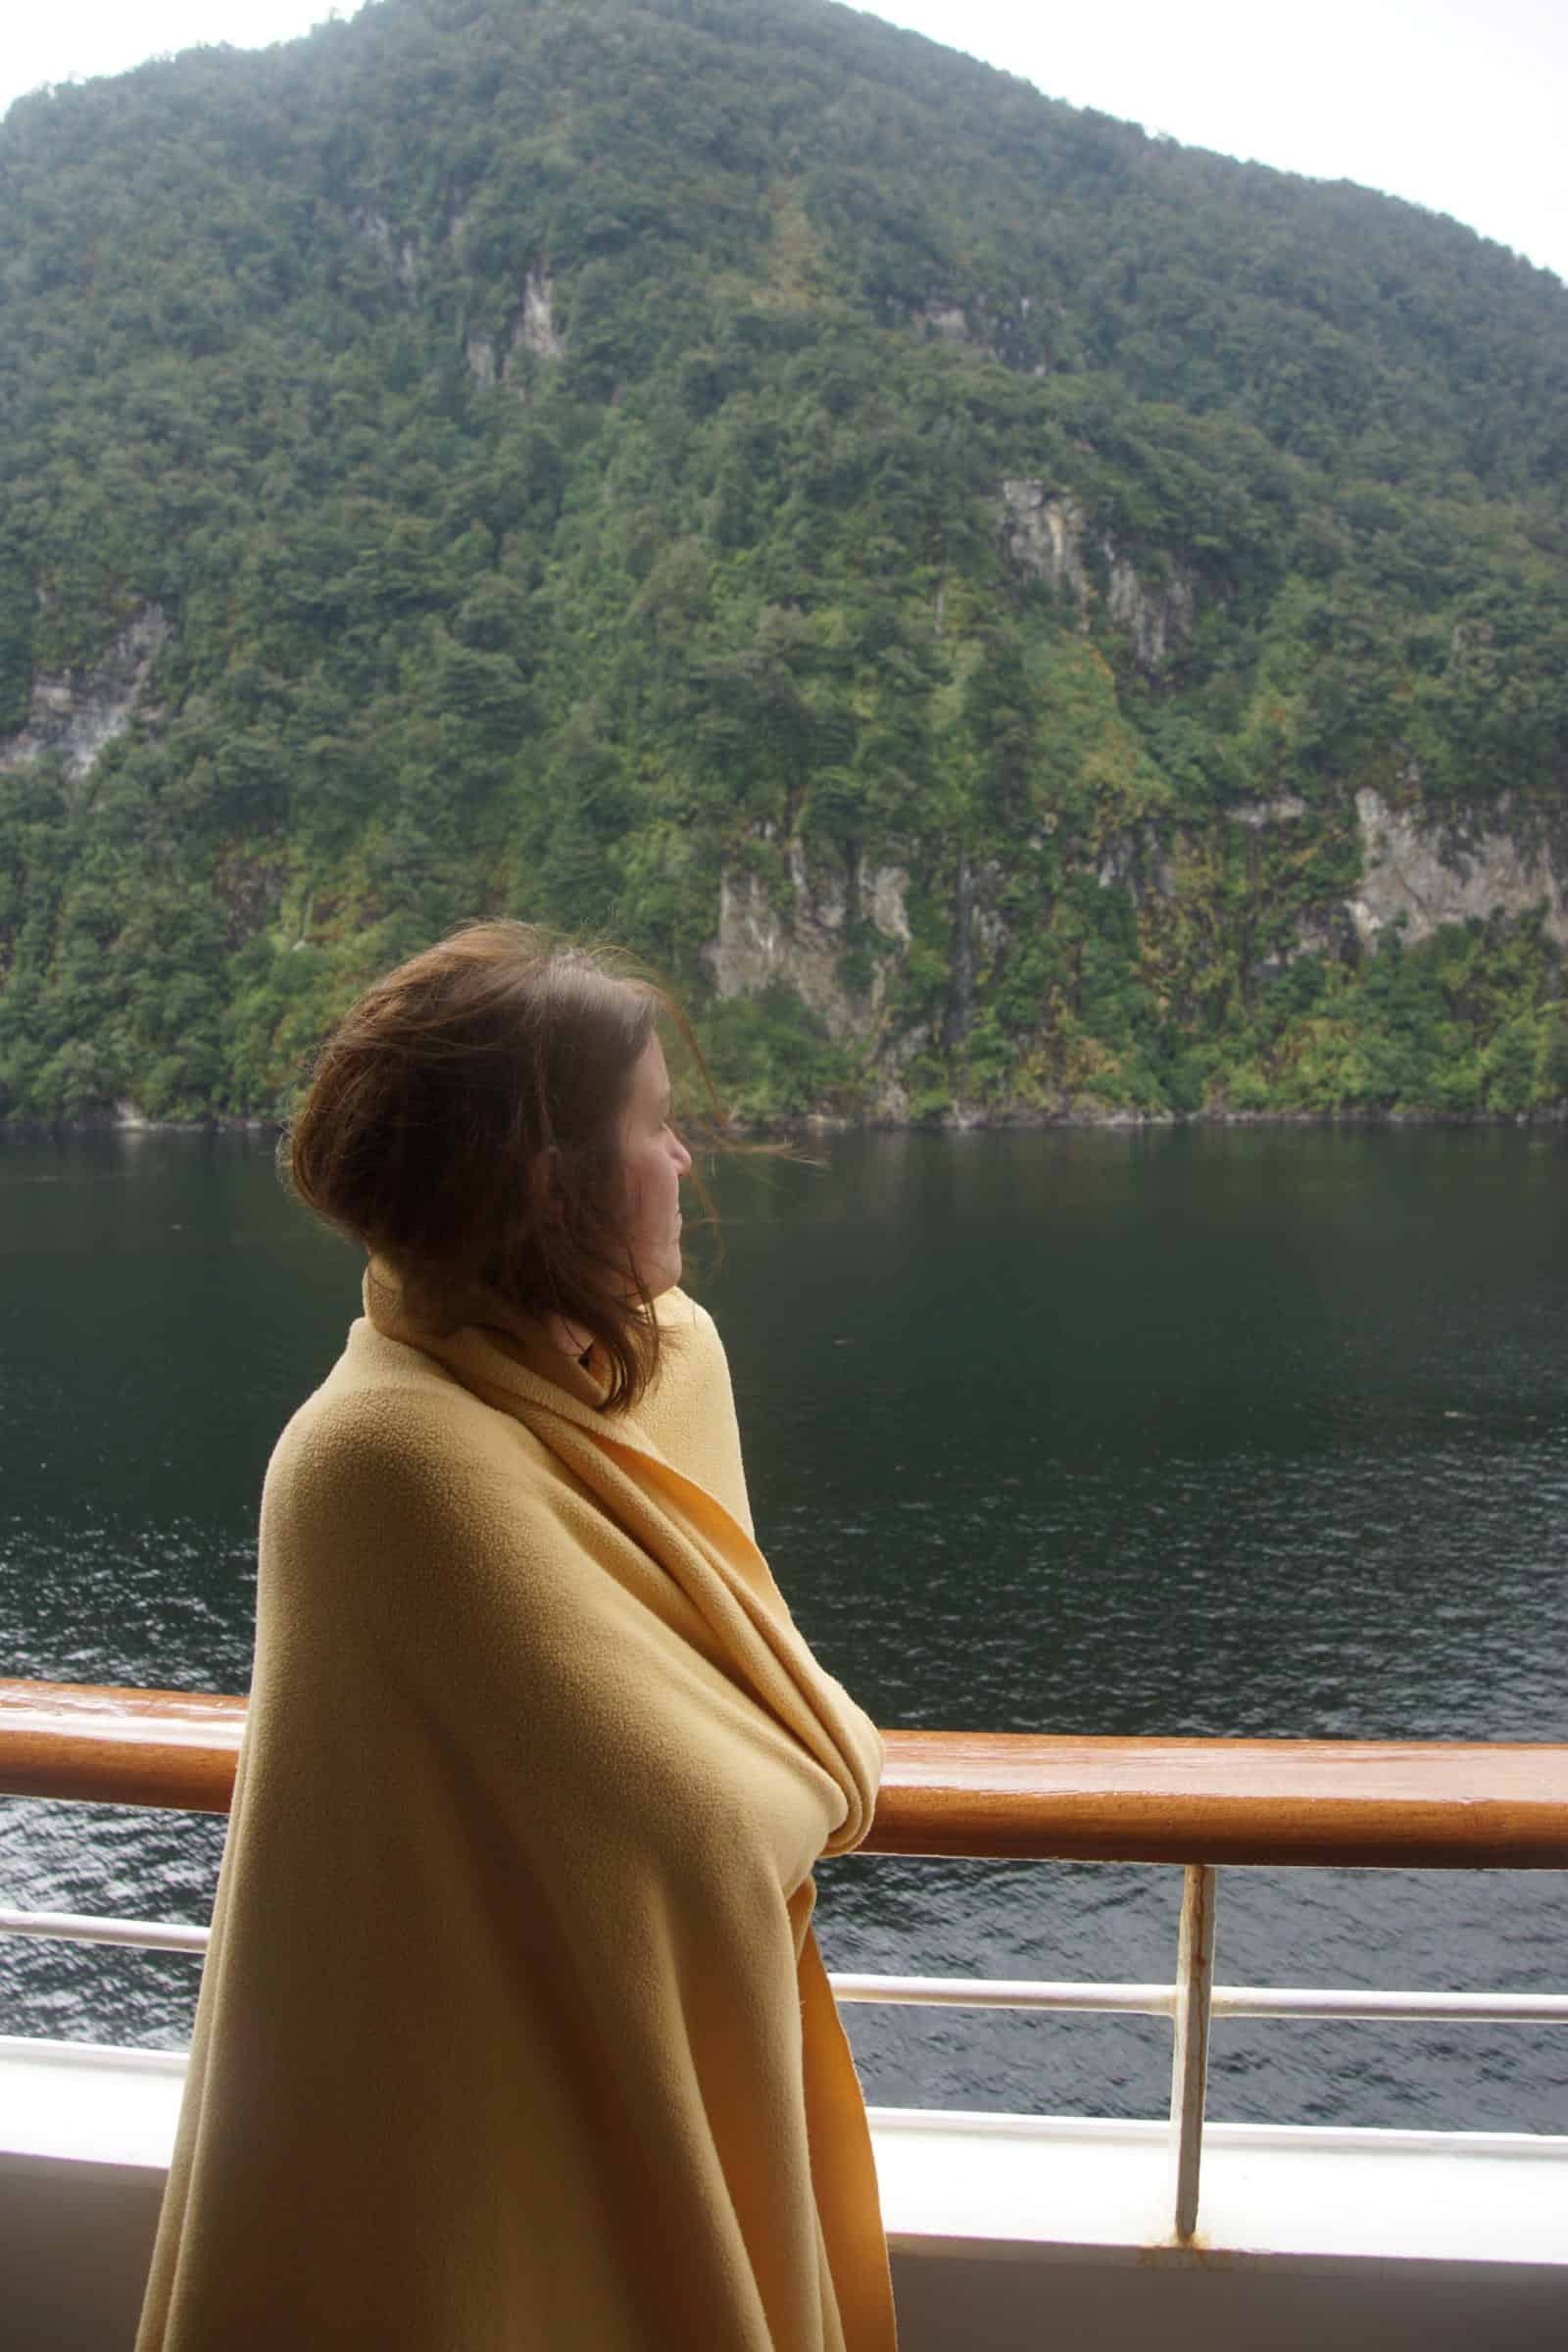 Scenic Cruising from Balcony in New Zealand - tips for cruising while pregnant - how to have a cruise babymoon